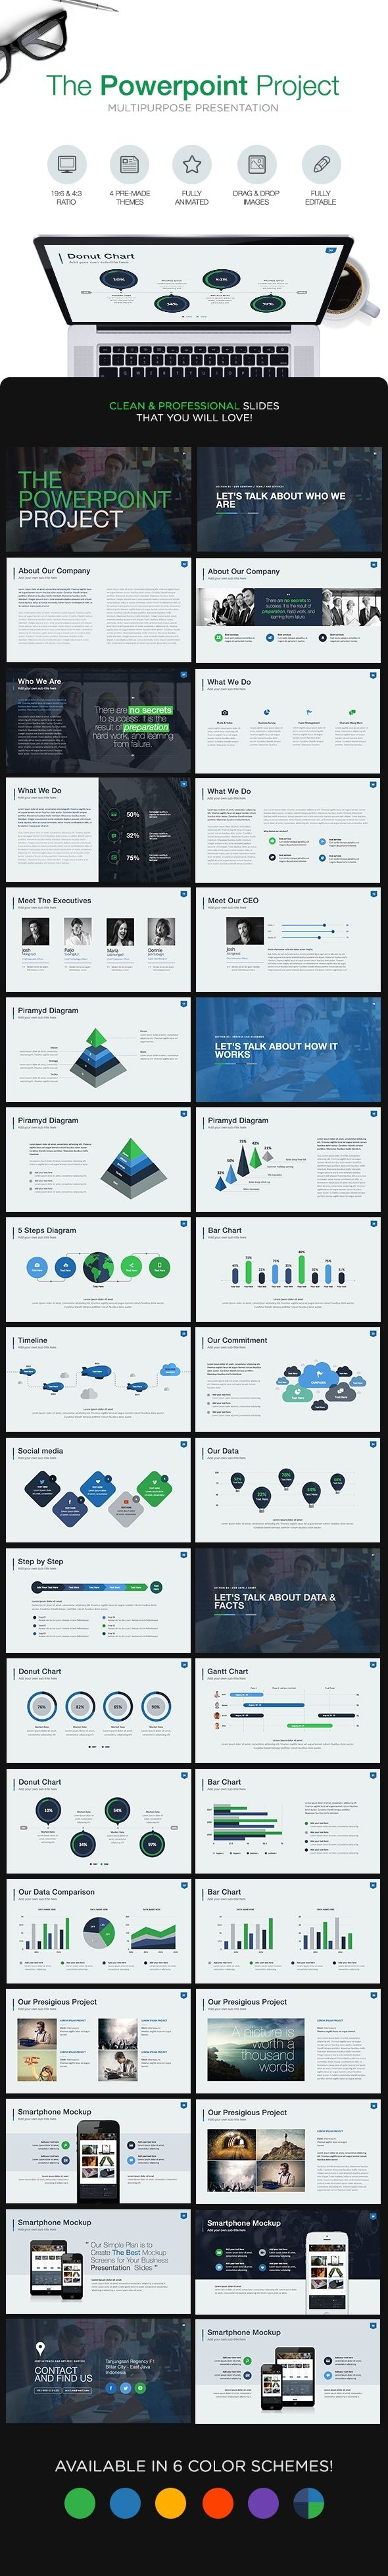 The Powerpoint Project  Powerpoint Template Powerpoint Templates